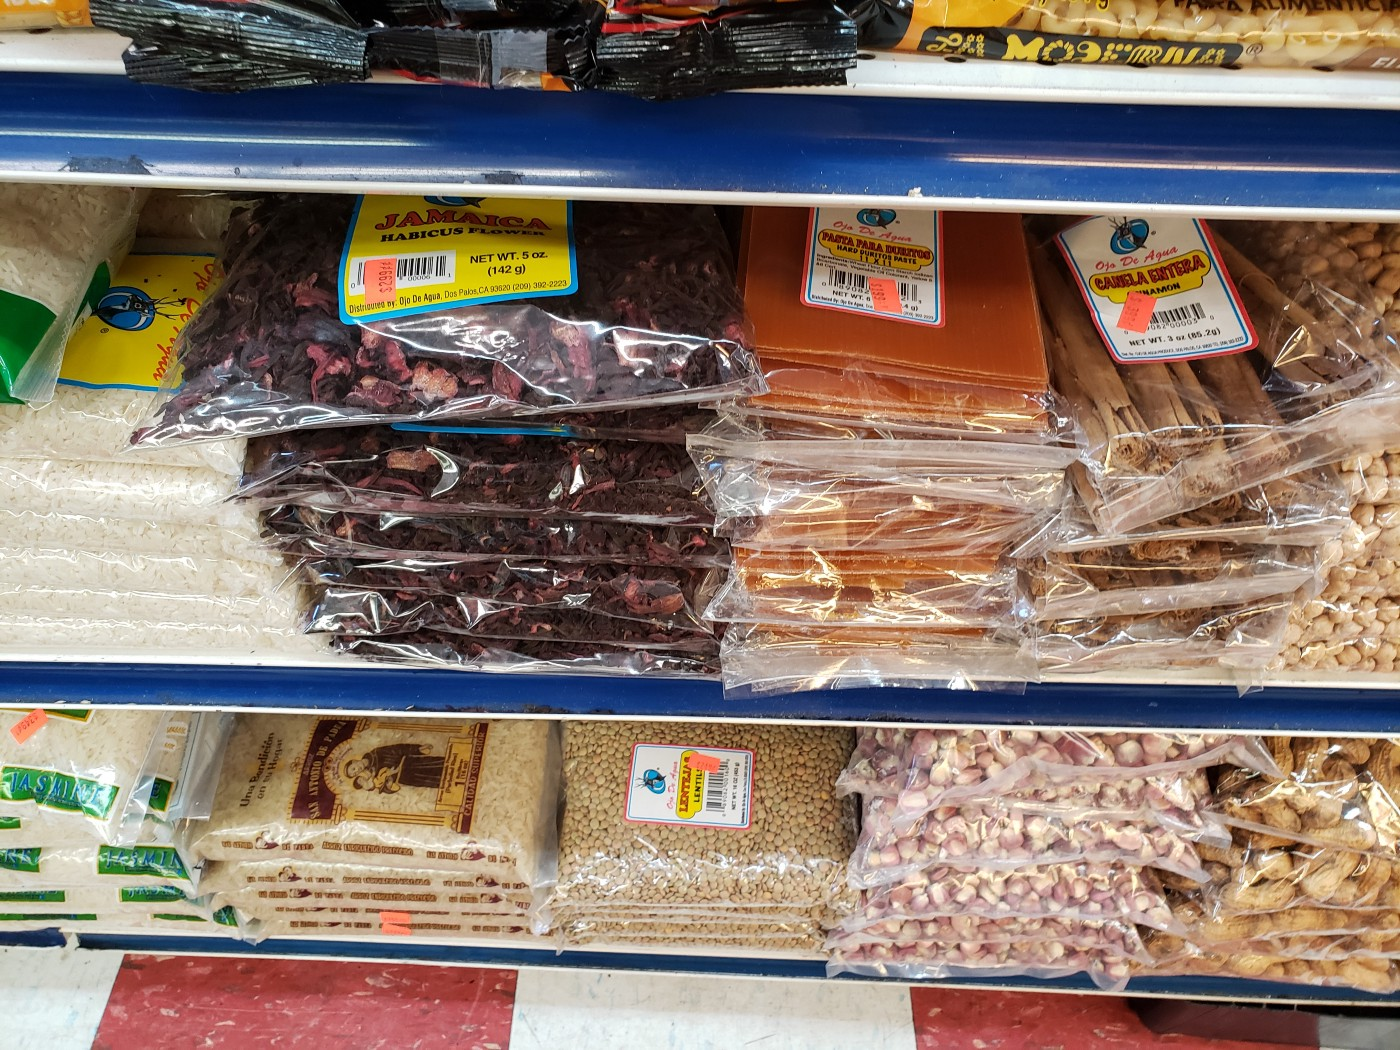 Dried goods: jamaica (hibiscus), durito sheets, cinnamon sticks, rice, hominy and peanuts at E. 14th Produce